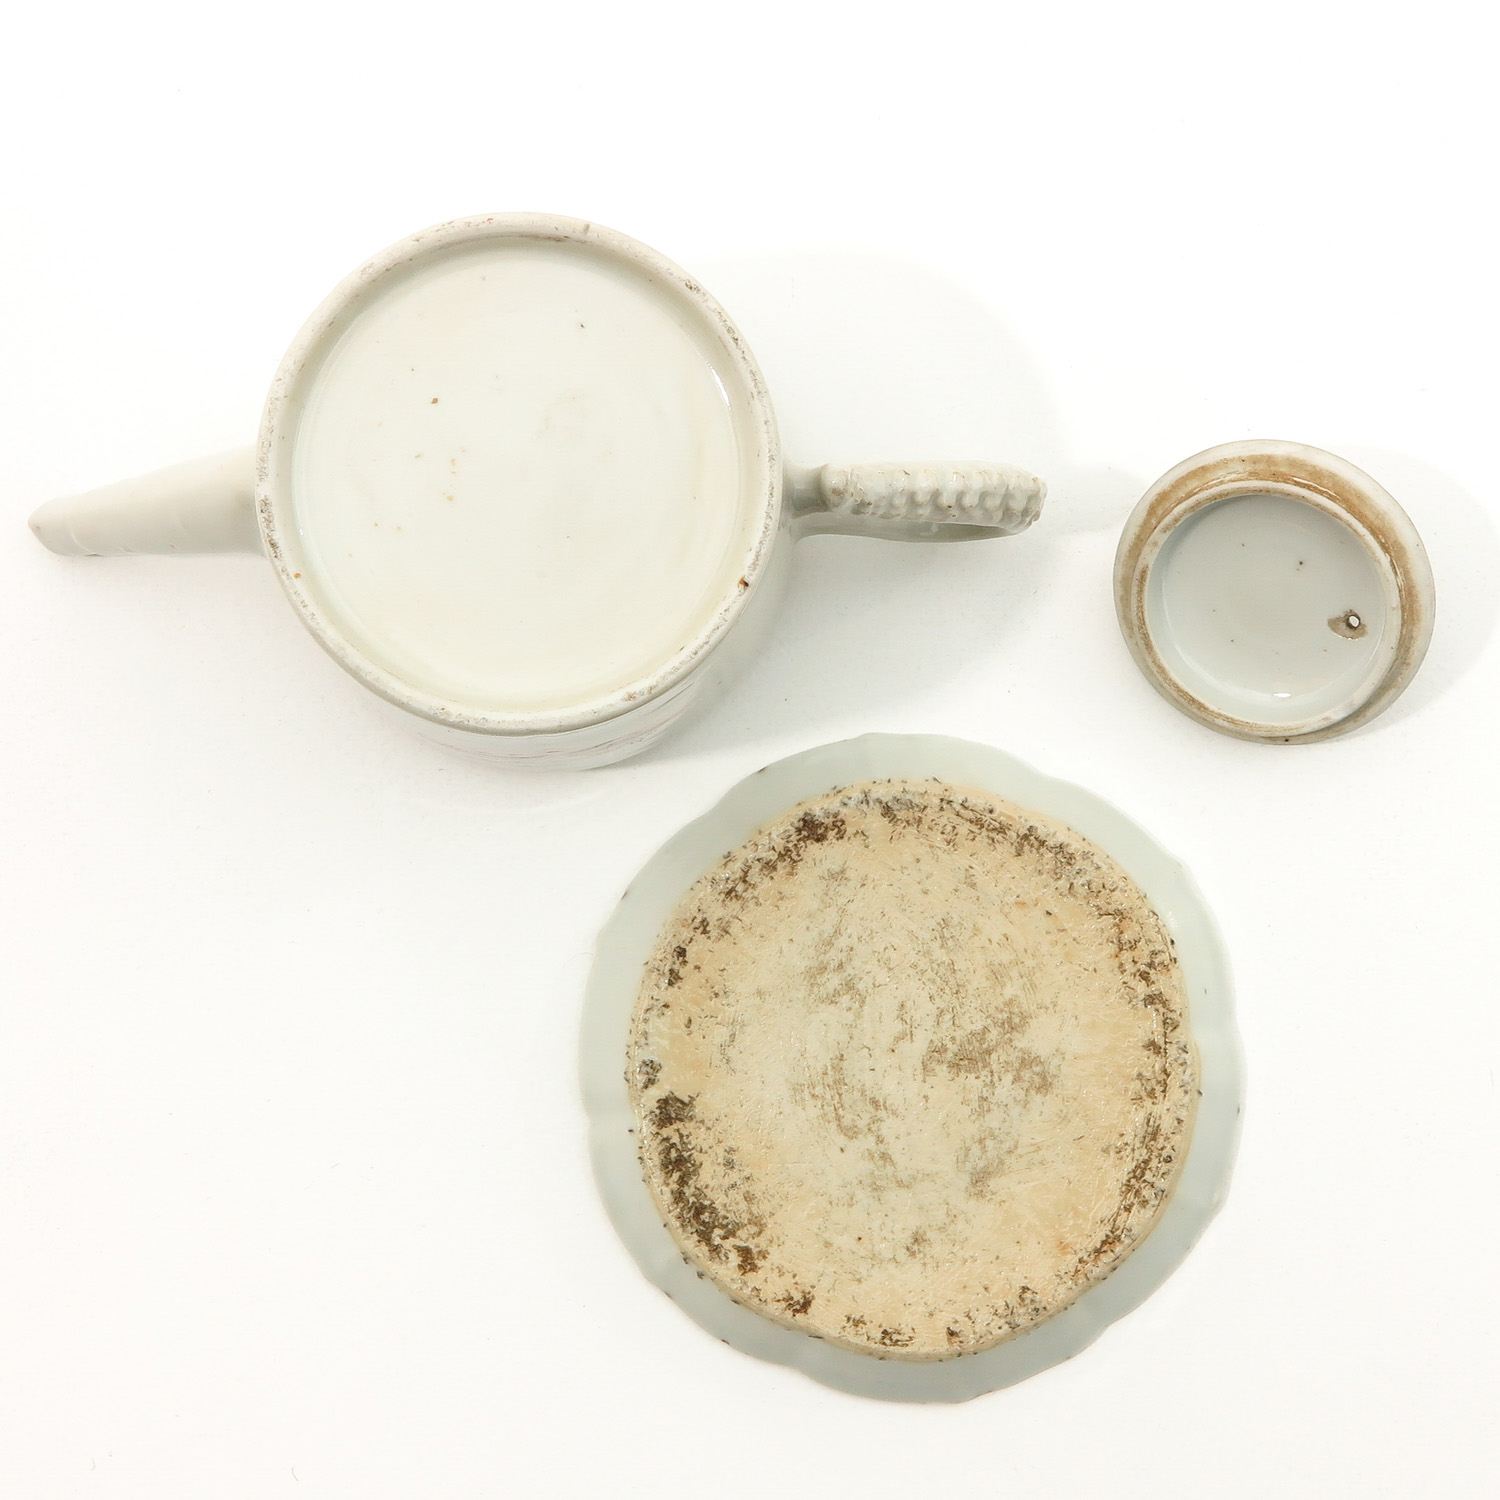 A Teapot and Small Dish - Image 6 of 9